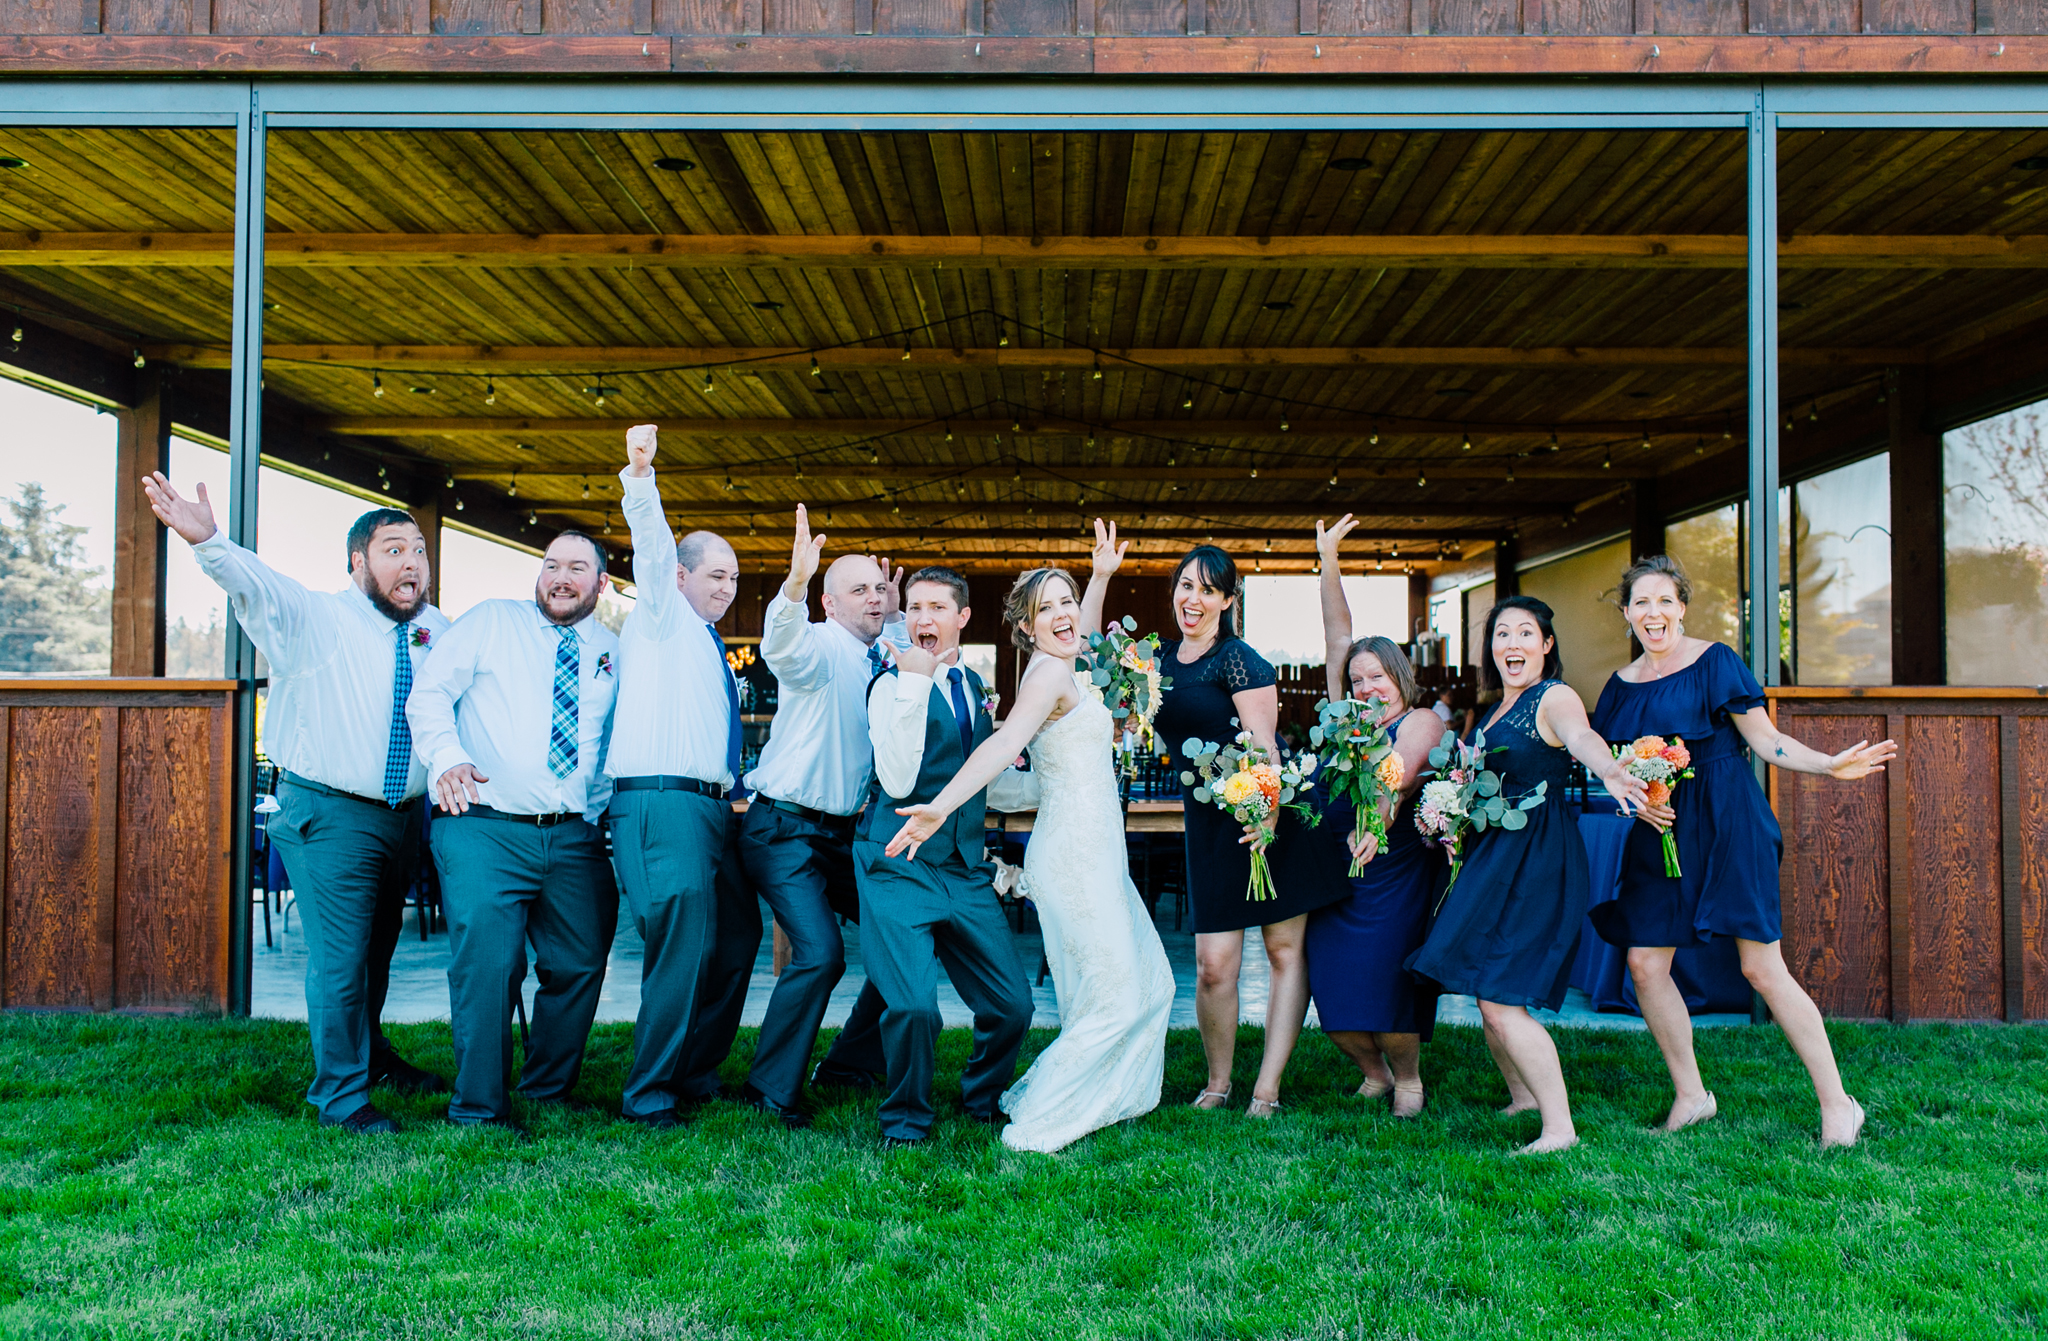 048-bellingham-wedding-photographer-samson-winery-katheryn-moran.jpg